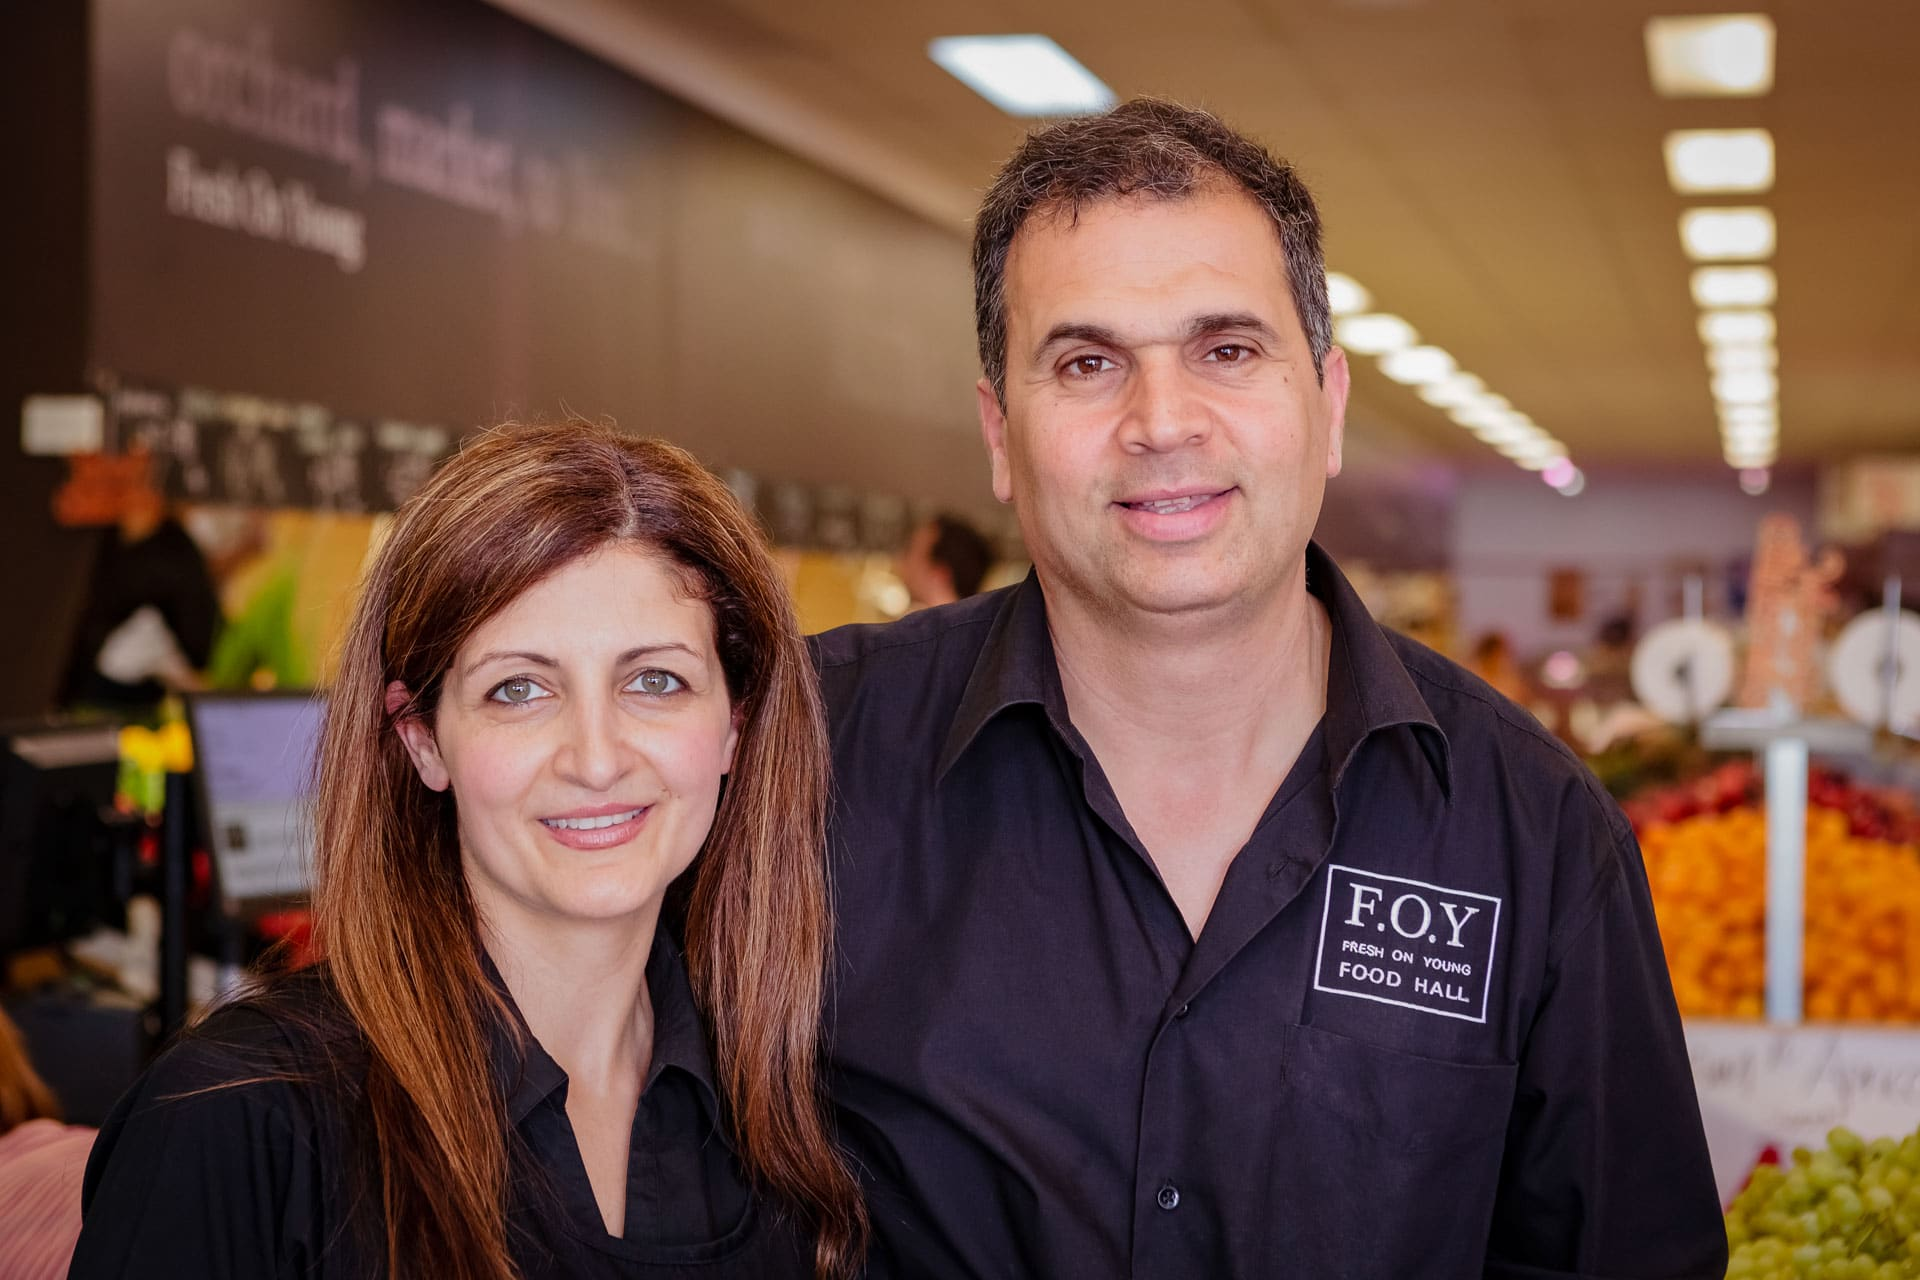 husband and wife business owners portrait photograph at their fresh food business fresh on young store with in store in the background behind them